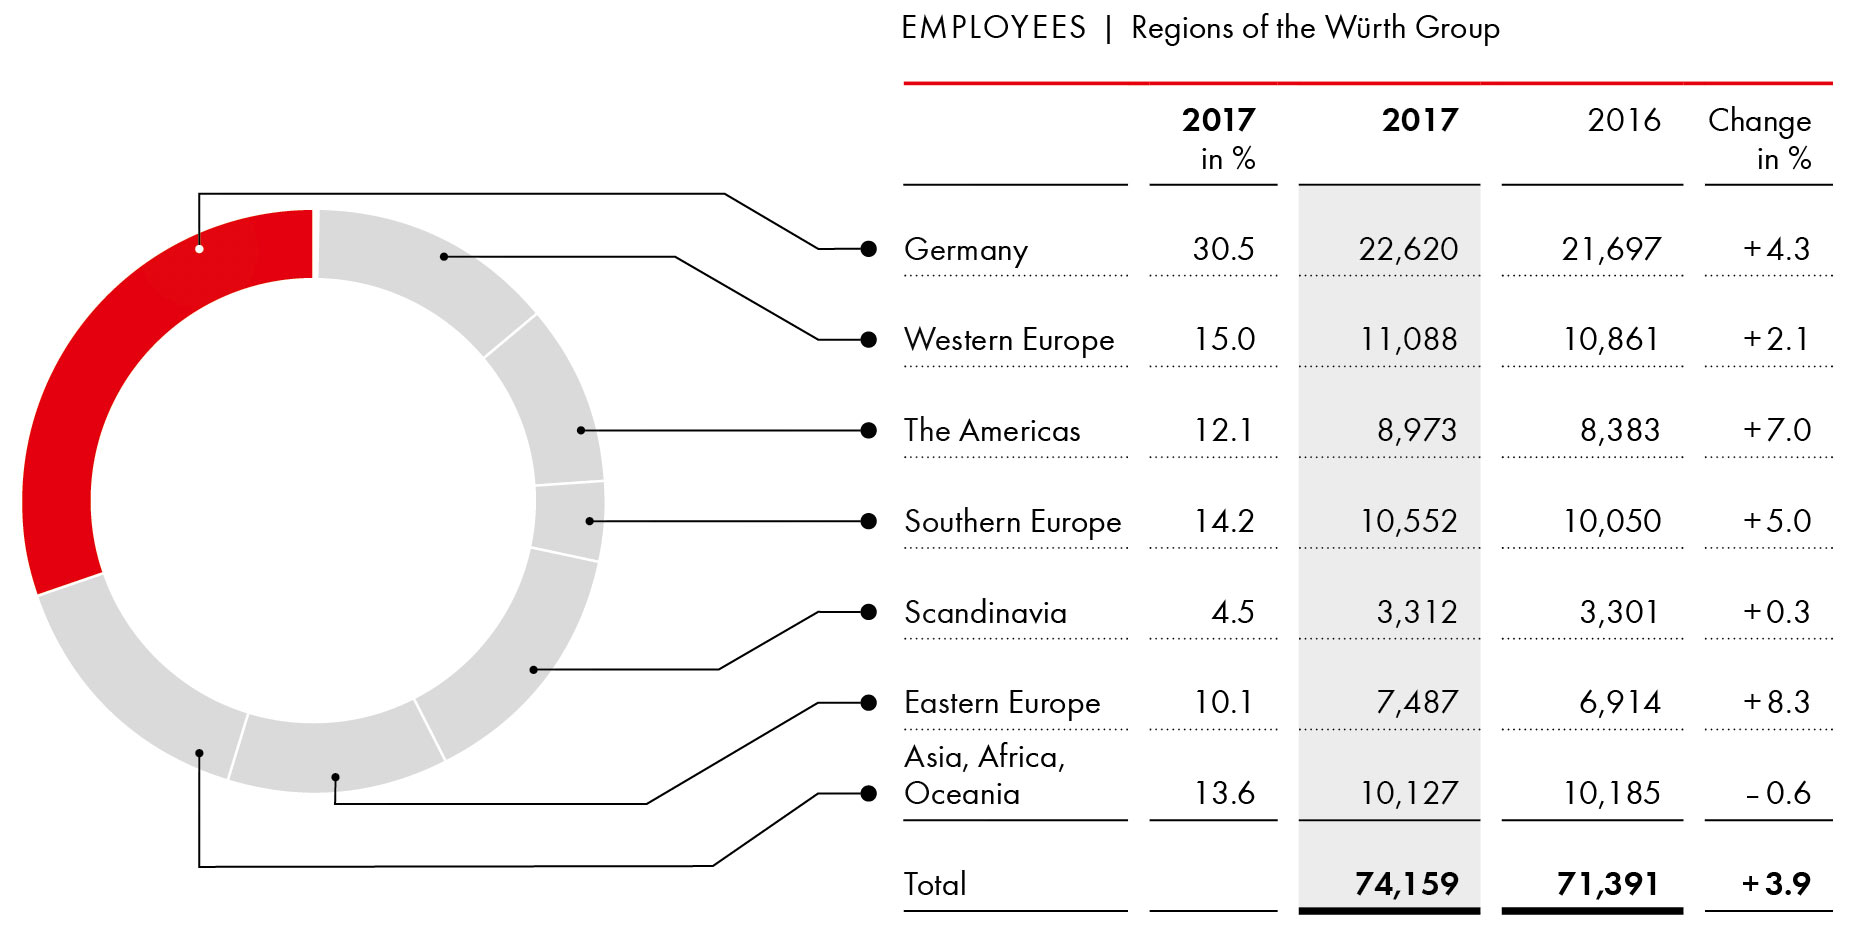 Employees by region 2017